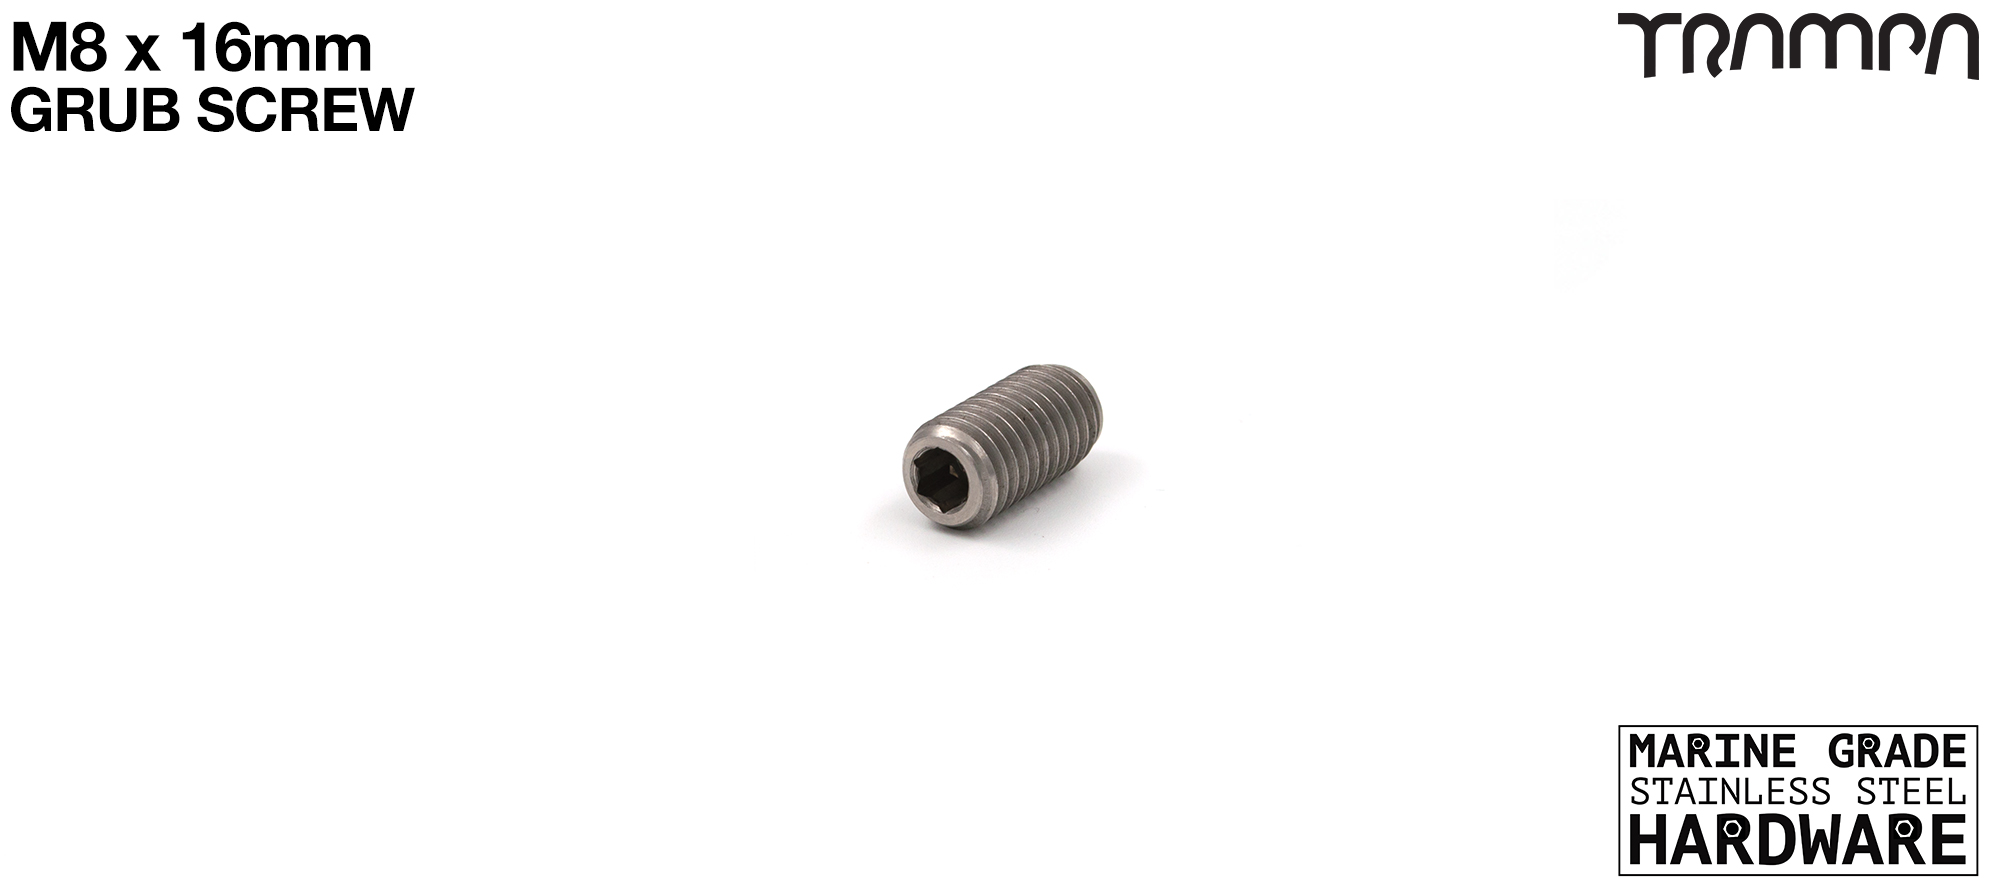 M8 x 16mm GRIPPY Grub Screw MGST Shape B with FLAT BALL - Connects Street Urban & Mountaniboard mounts to Hangers